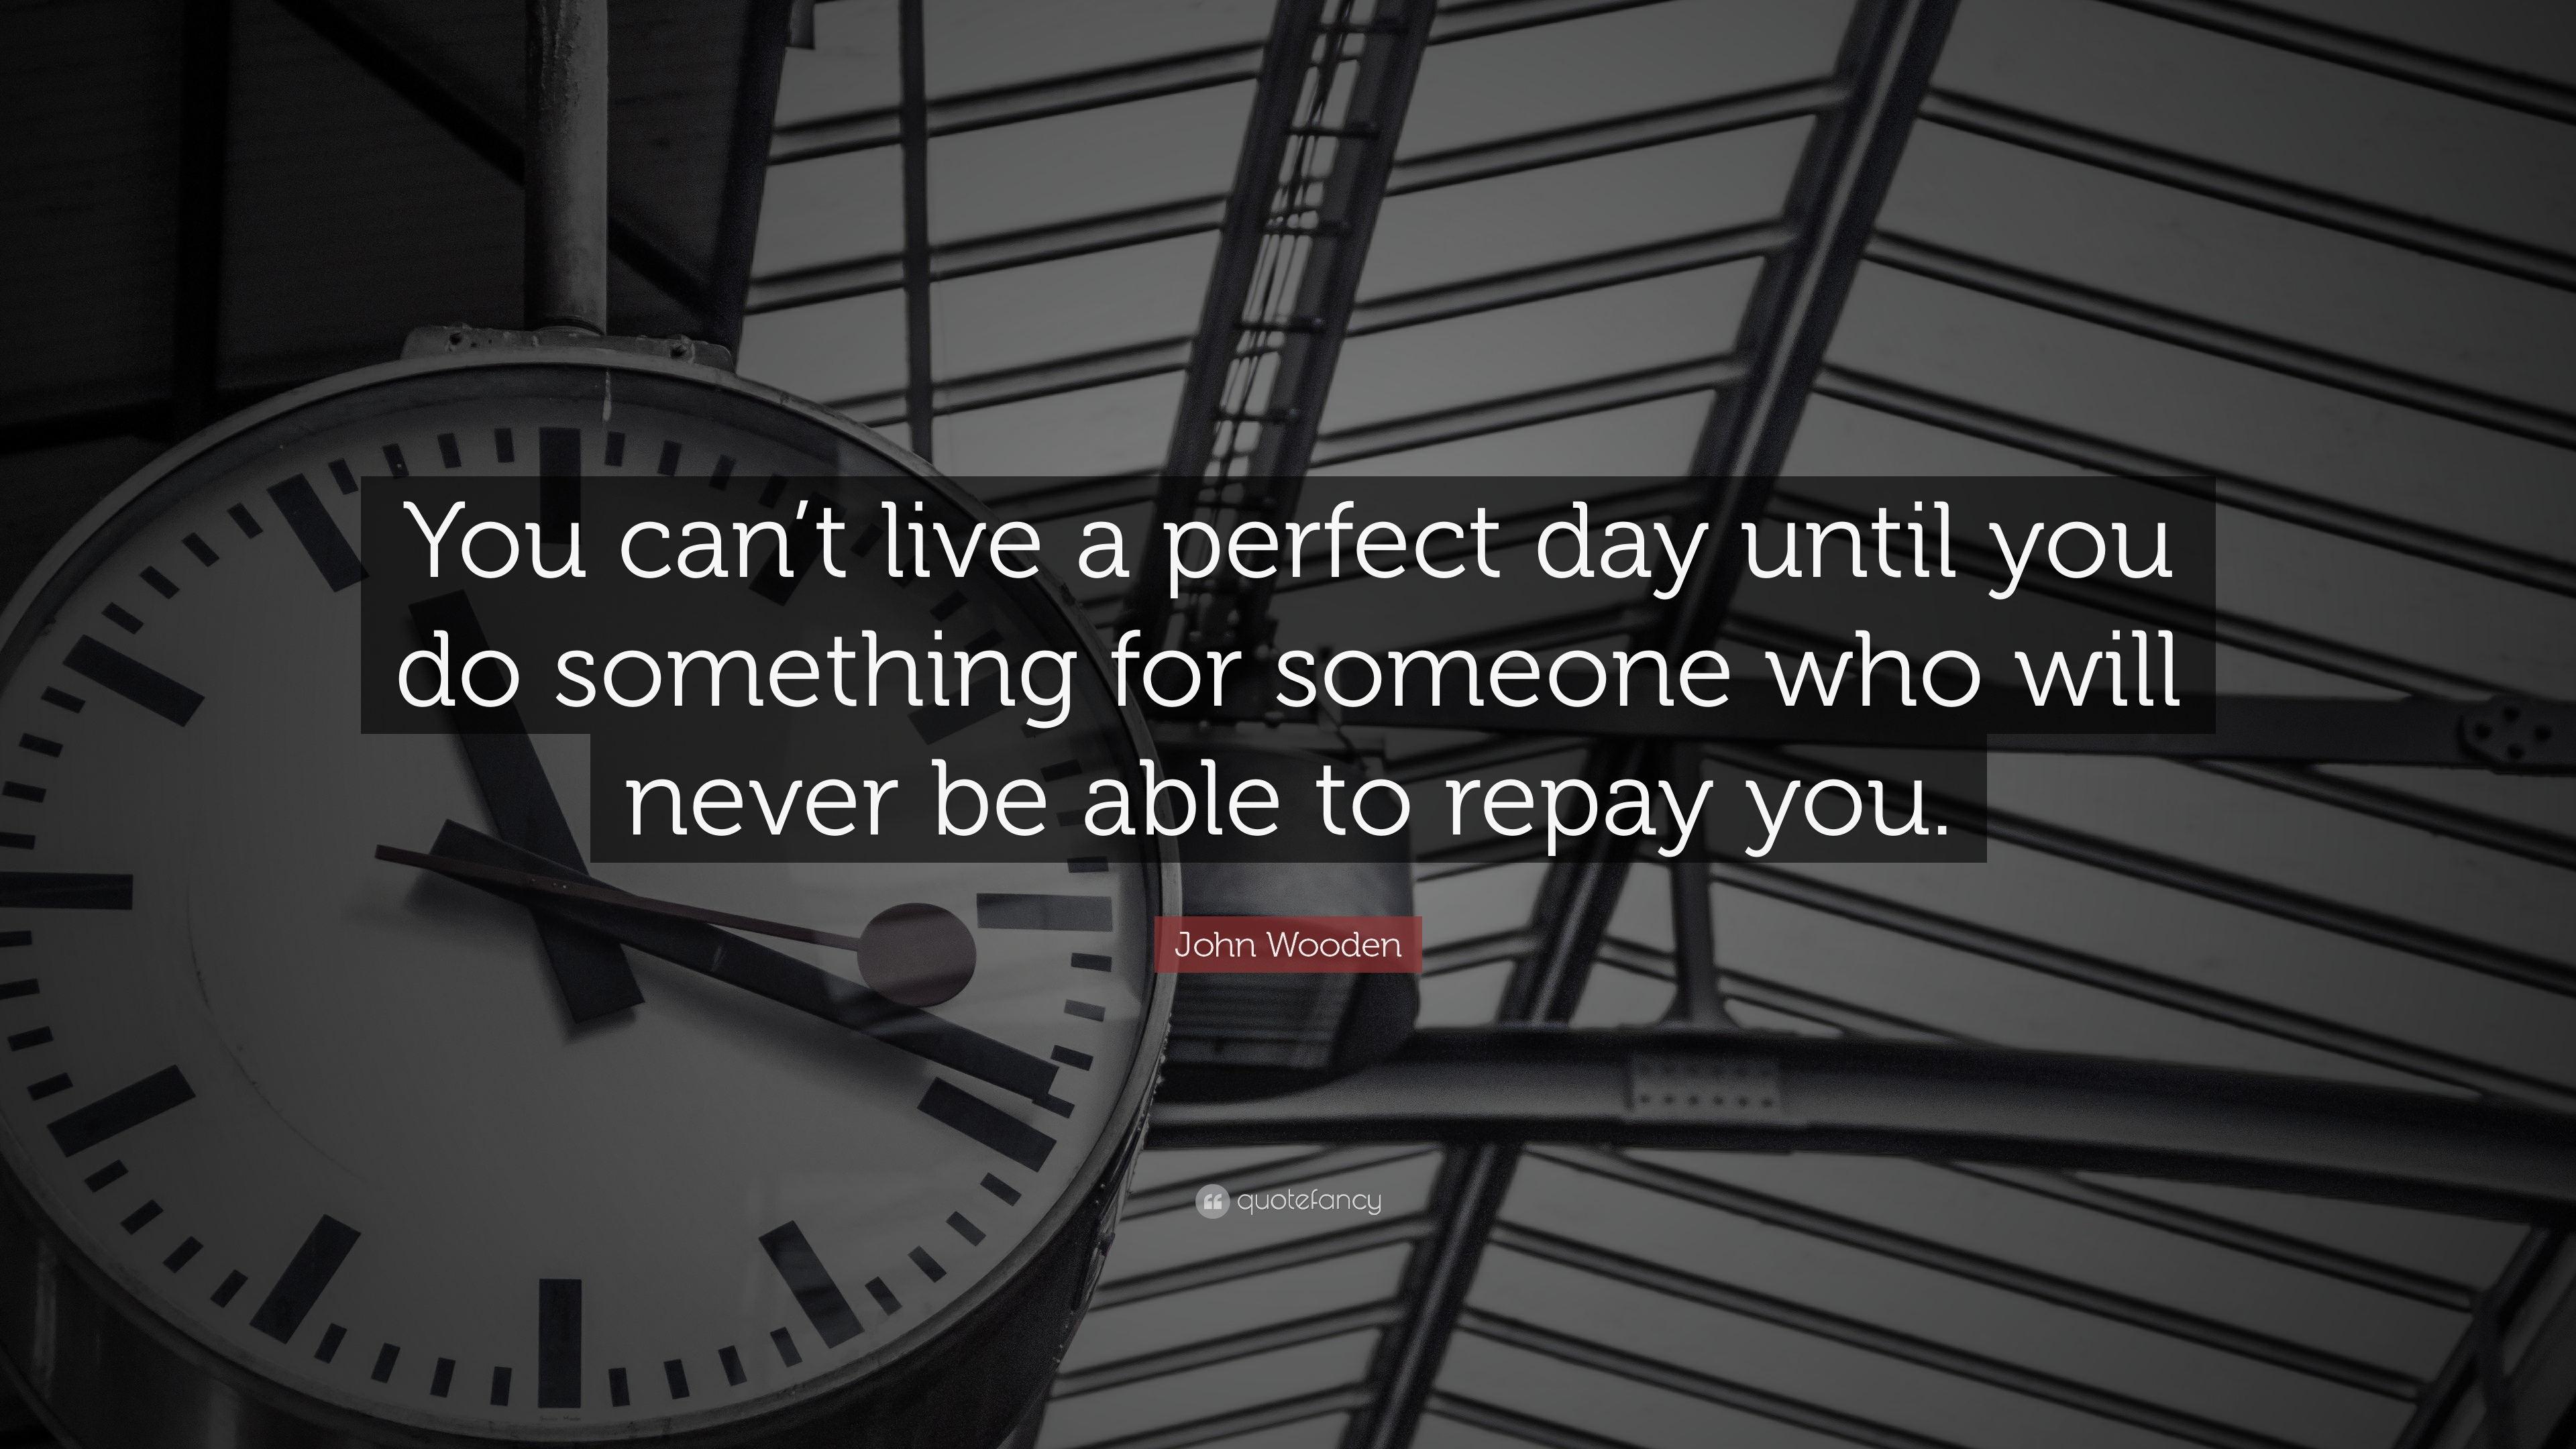 13133-John-Wooden-Quote-You-can-t-live-a-perfect-day-until-you-do